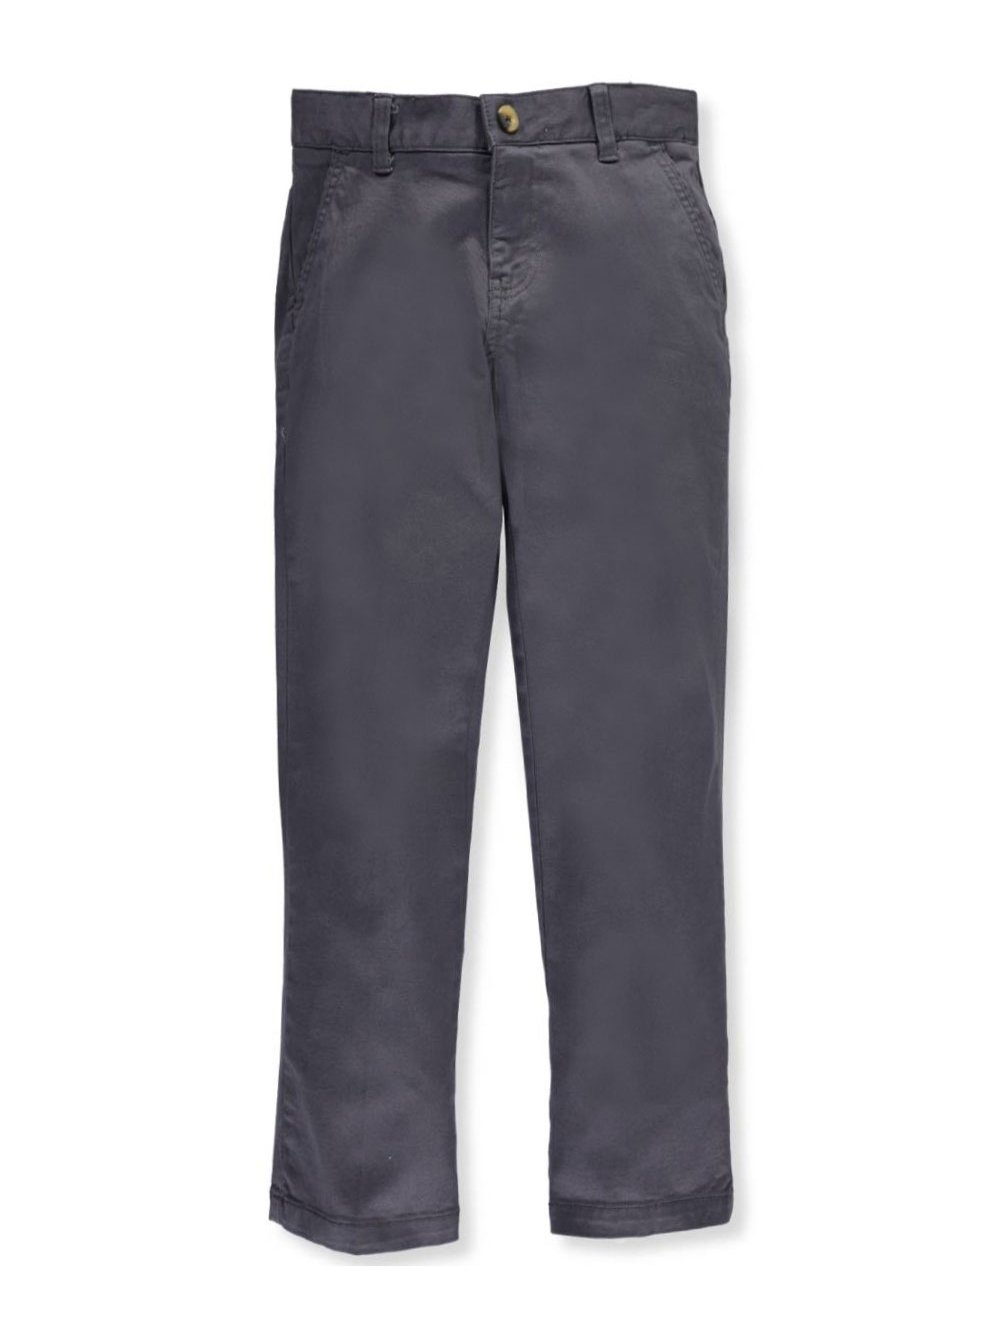 French Toast Big Boys' Twill Straight Fit Chino Pants - Gray, 14